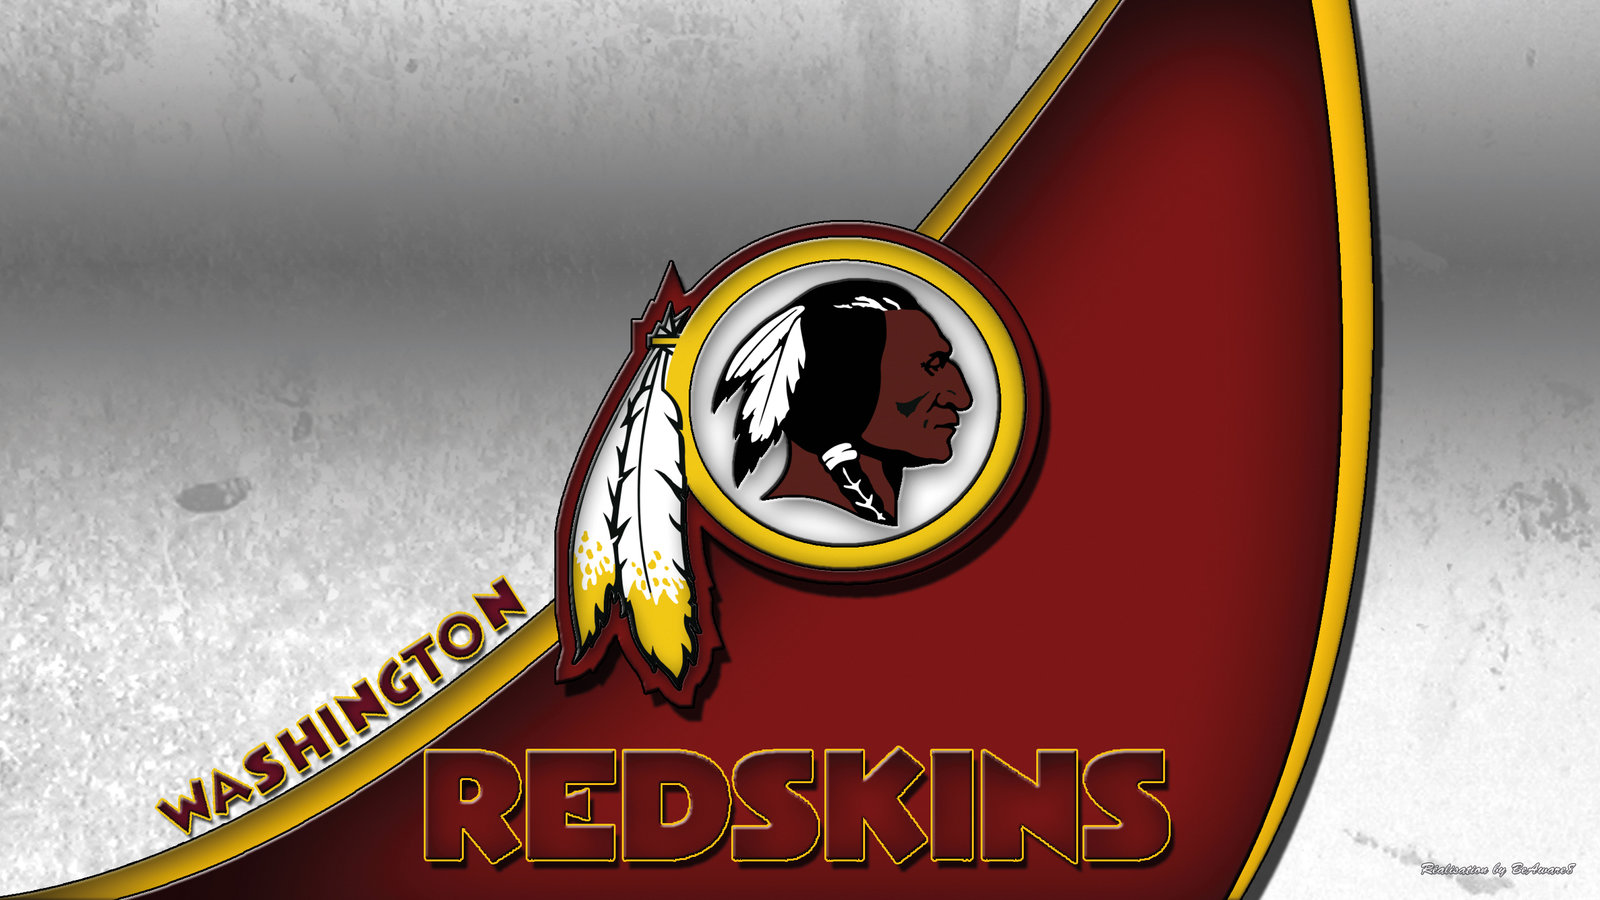 Washington Redskins tickets Buy and sell Washington Redskins and other NFL tickets at StubHub the NFLs Authorized Ticket Resale Marketplace 100